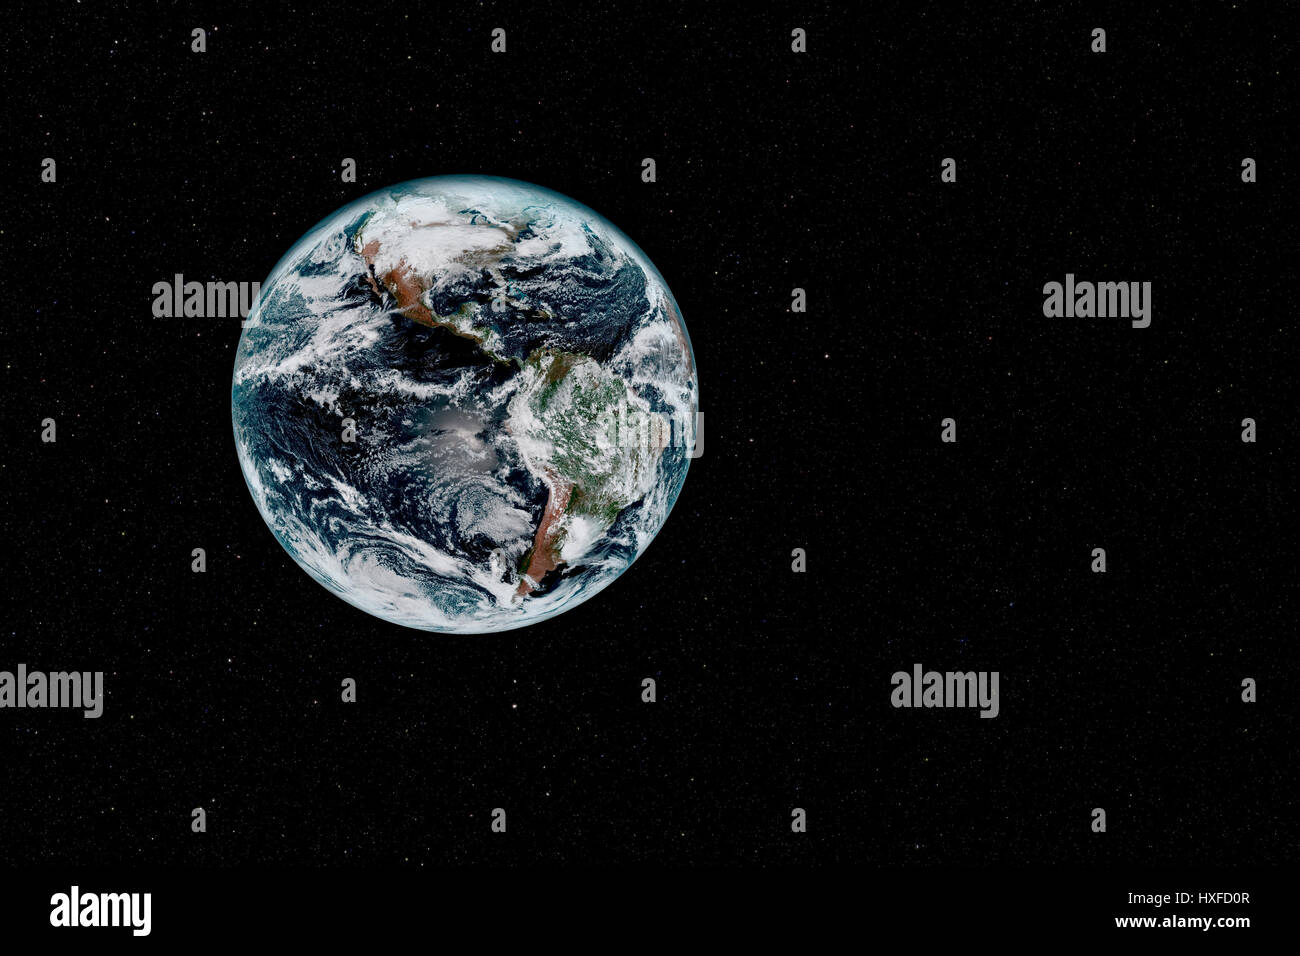 Planet Earth Against Composit Starfield - Stock Image